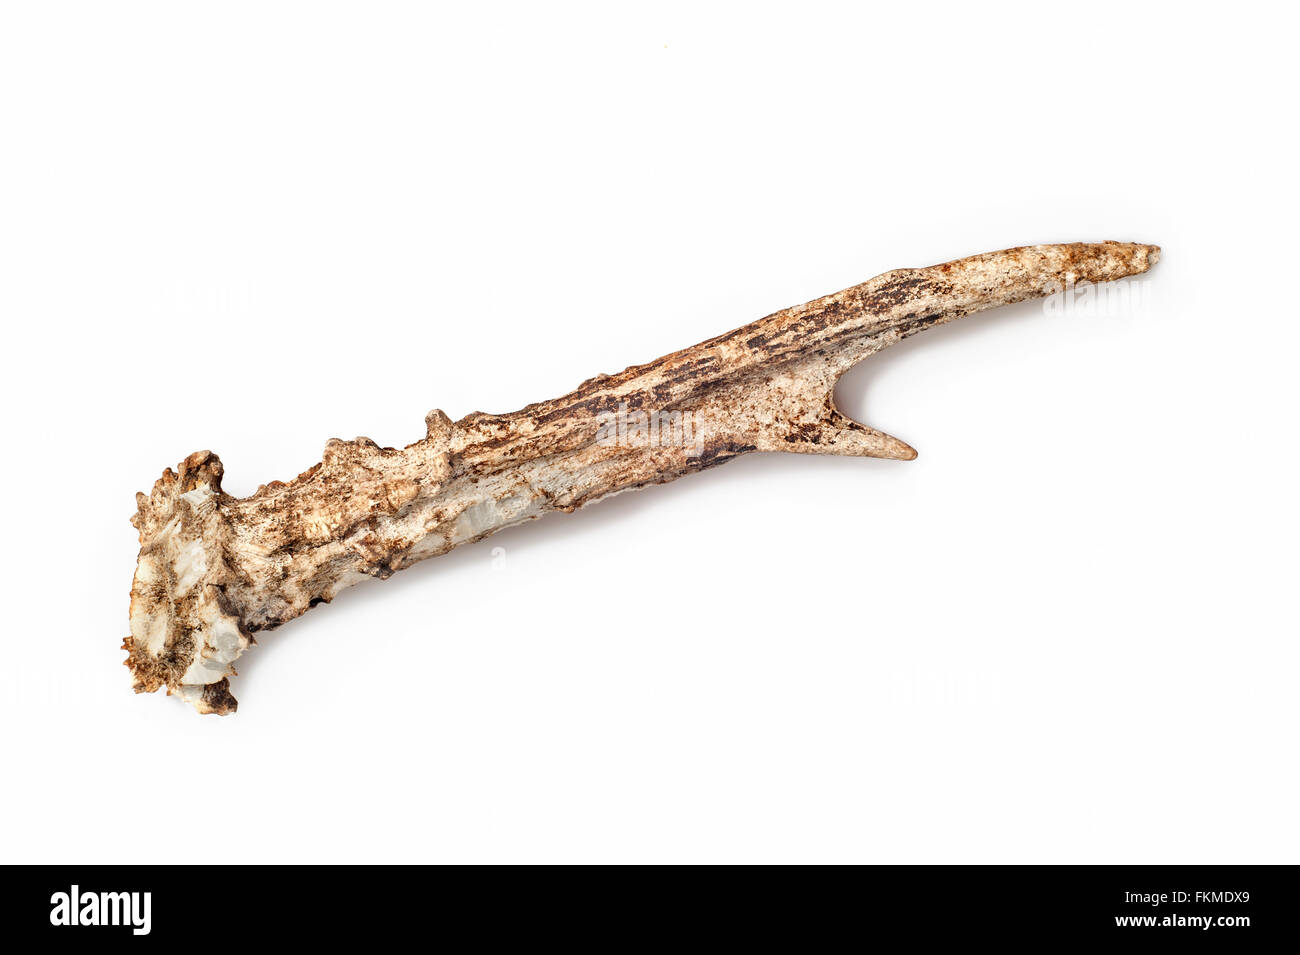 Shed antler of roe deer showing teeth marks and gnawed upon by mice, squirrels and other rodents for minerals and - Stock Image